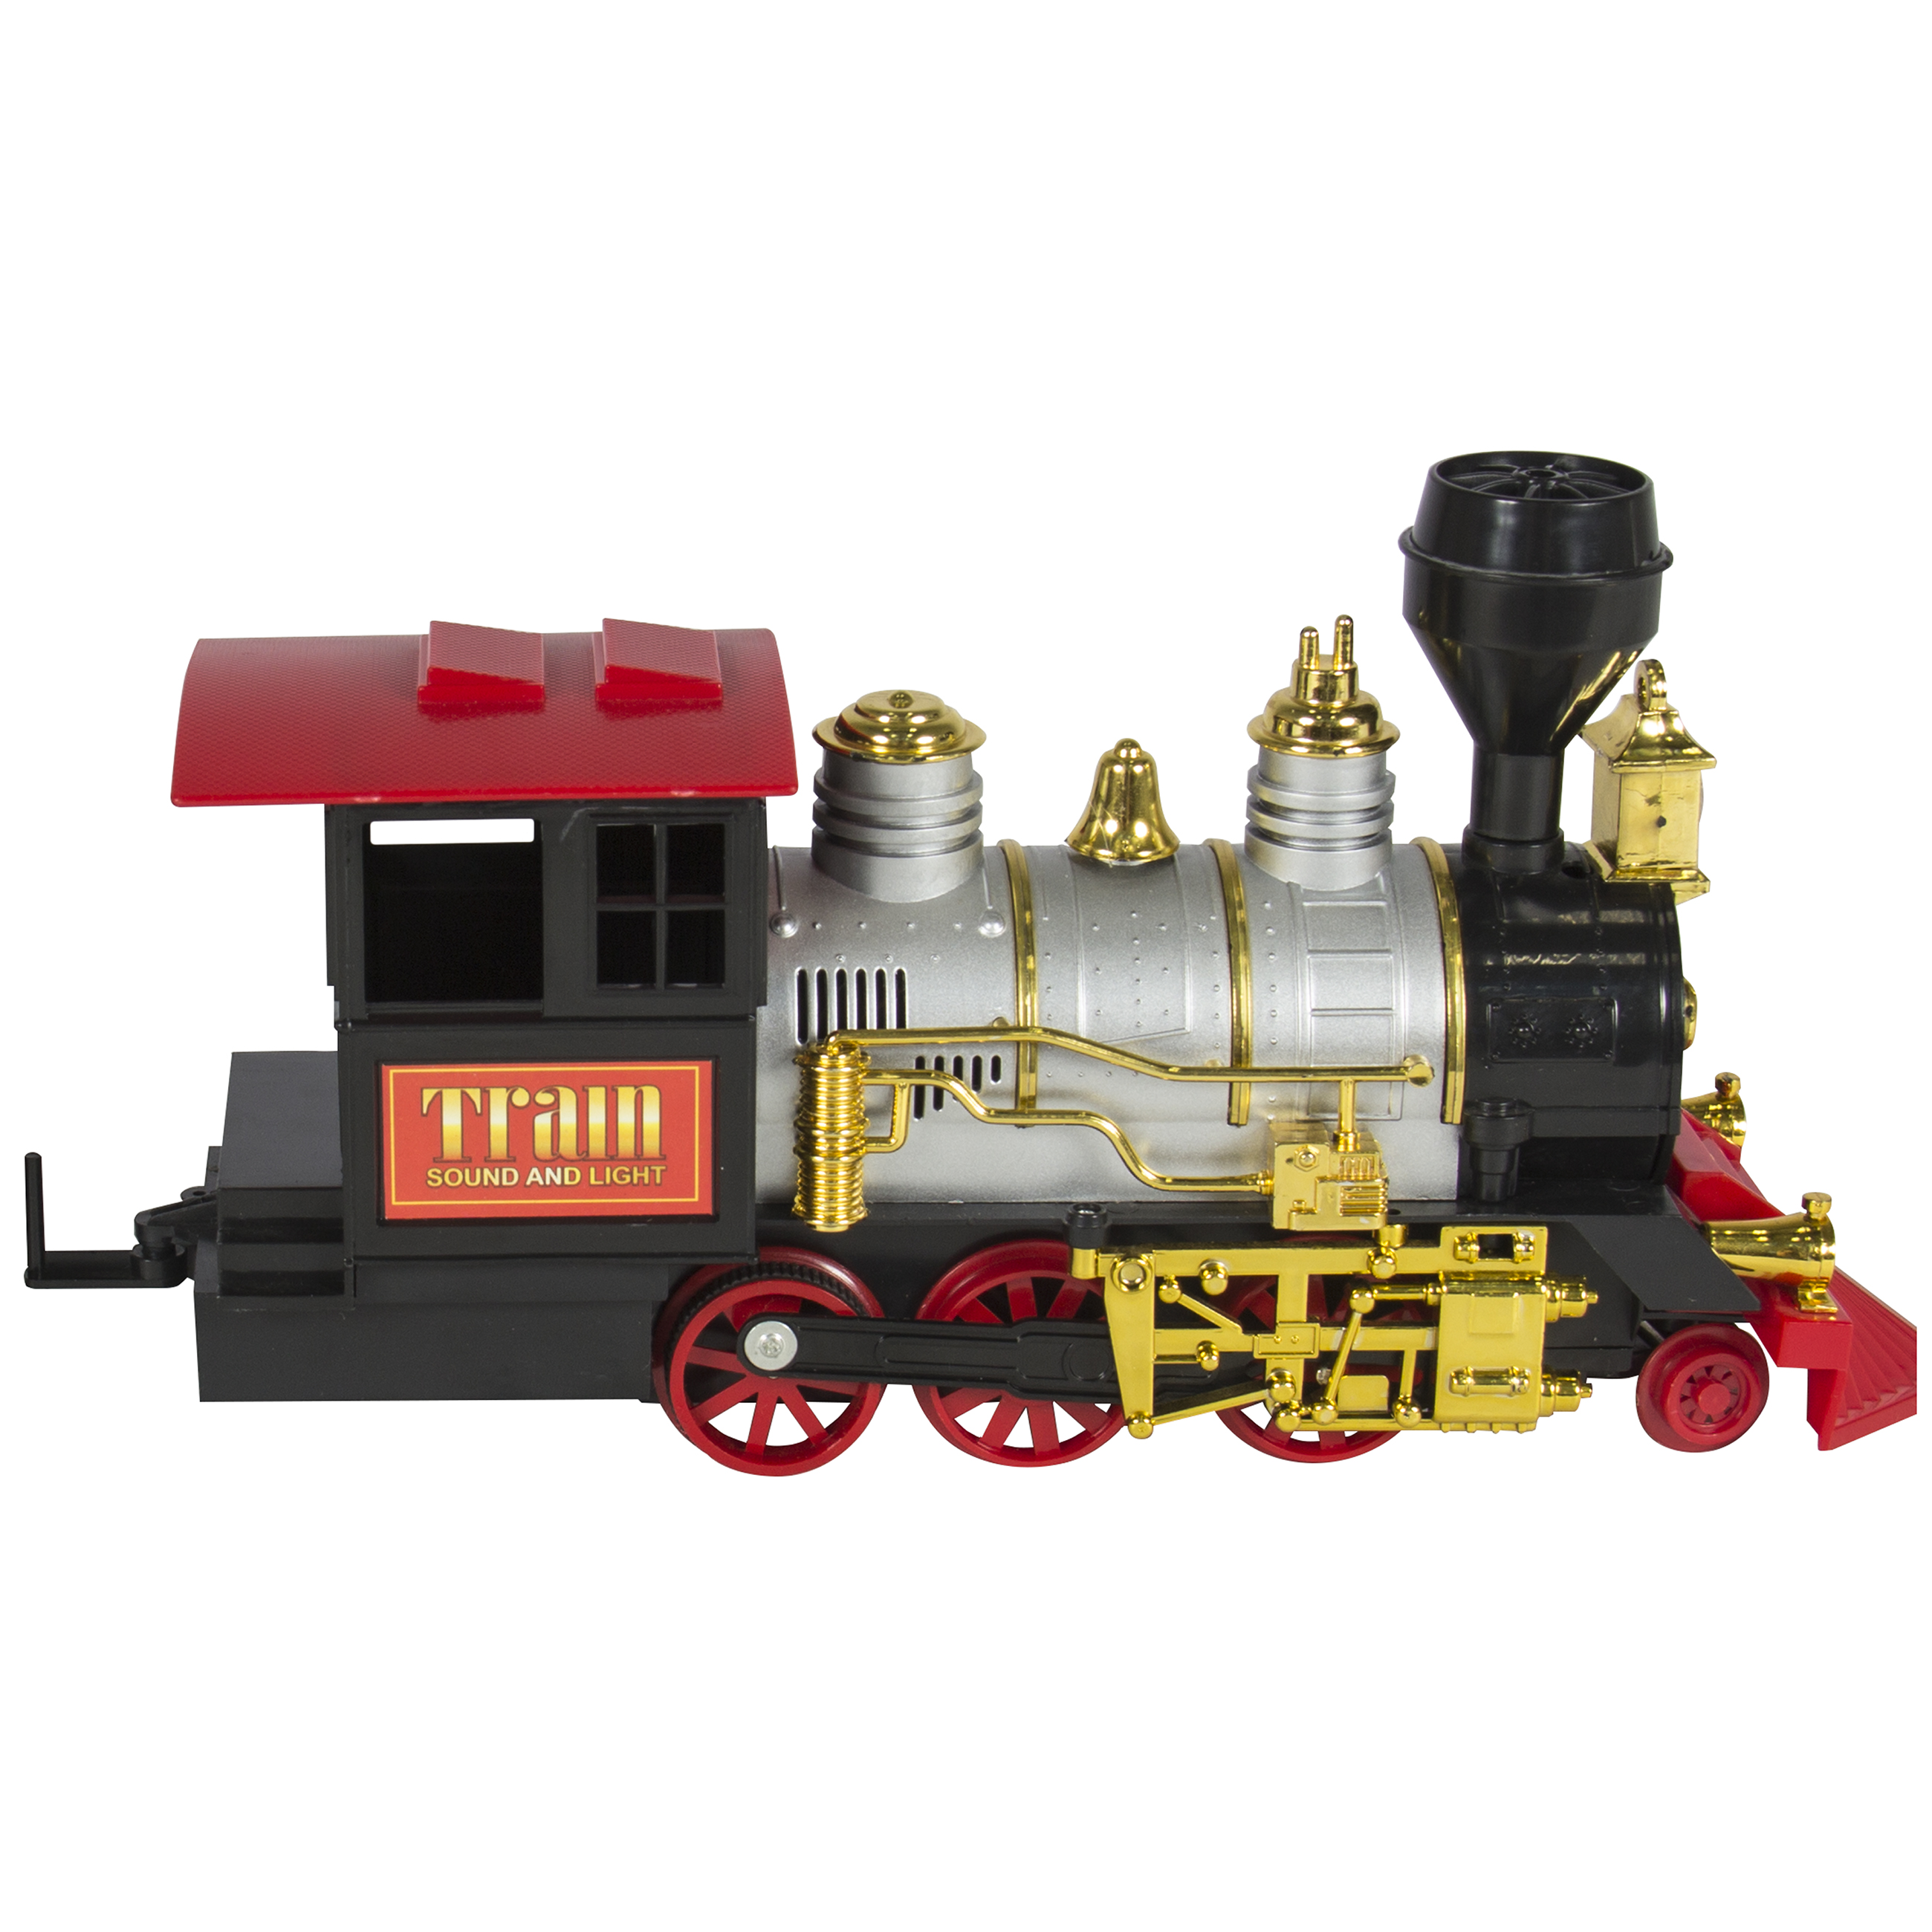 Classic Train Set For Kids With Real Smoke, Music, and ...